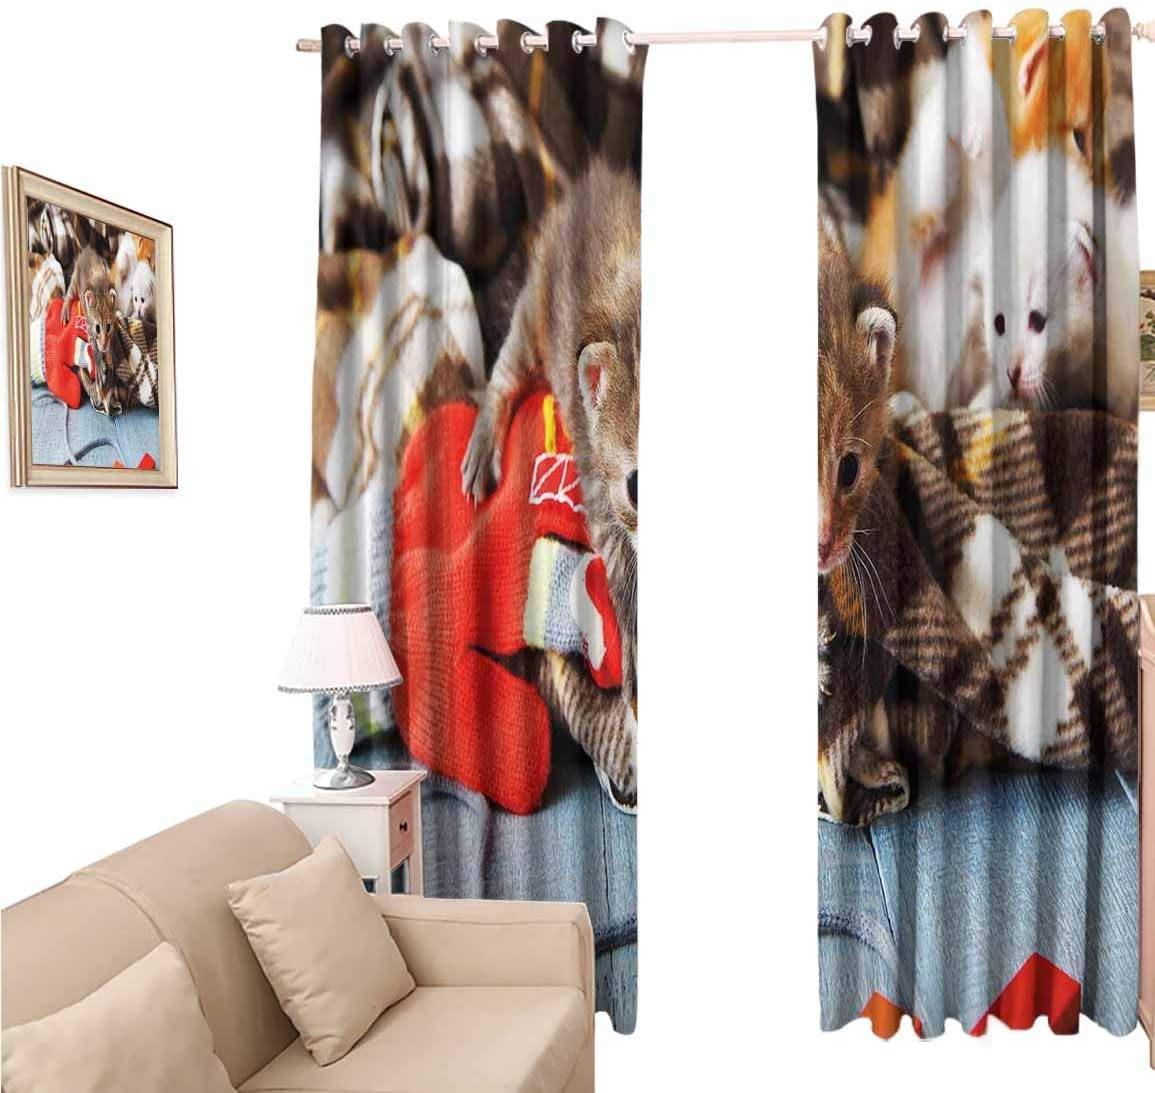 oobon Window Blackout Curtains Fabric, Cats Kittens and Mittens Newborns Baby Animals in an Plain Blanket Wood Play Toys Adorable, 108 Inches Long for Nursery Room, 96x108 inch